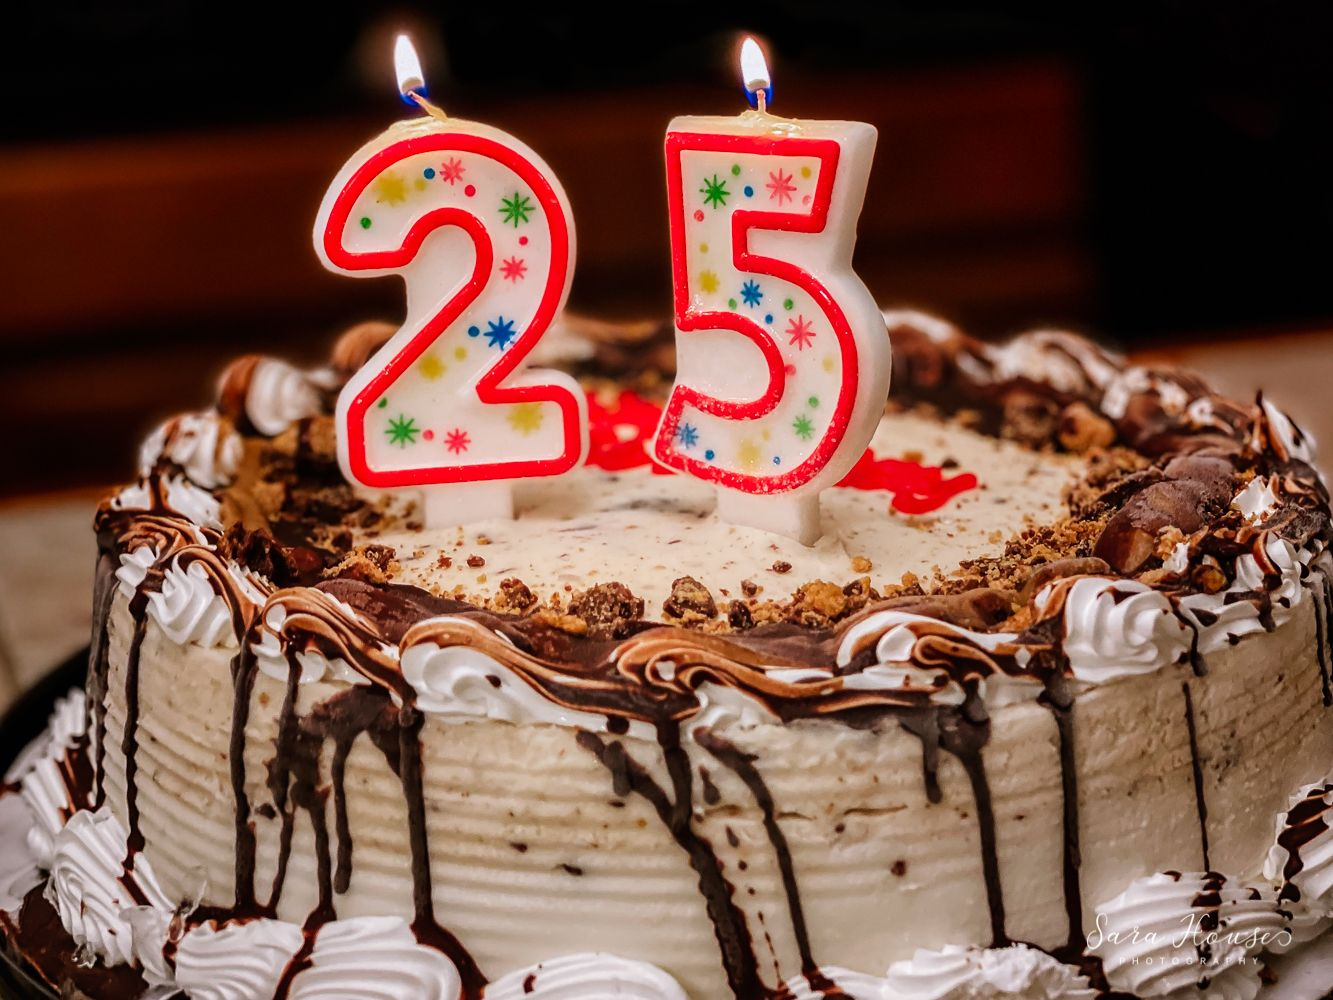 Birthday ice cream cake with the number 25 candles at a birthday party in Brownsburg, Indiana